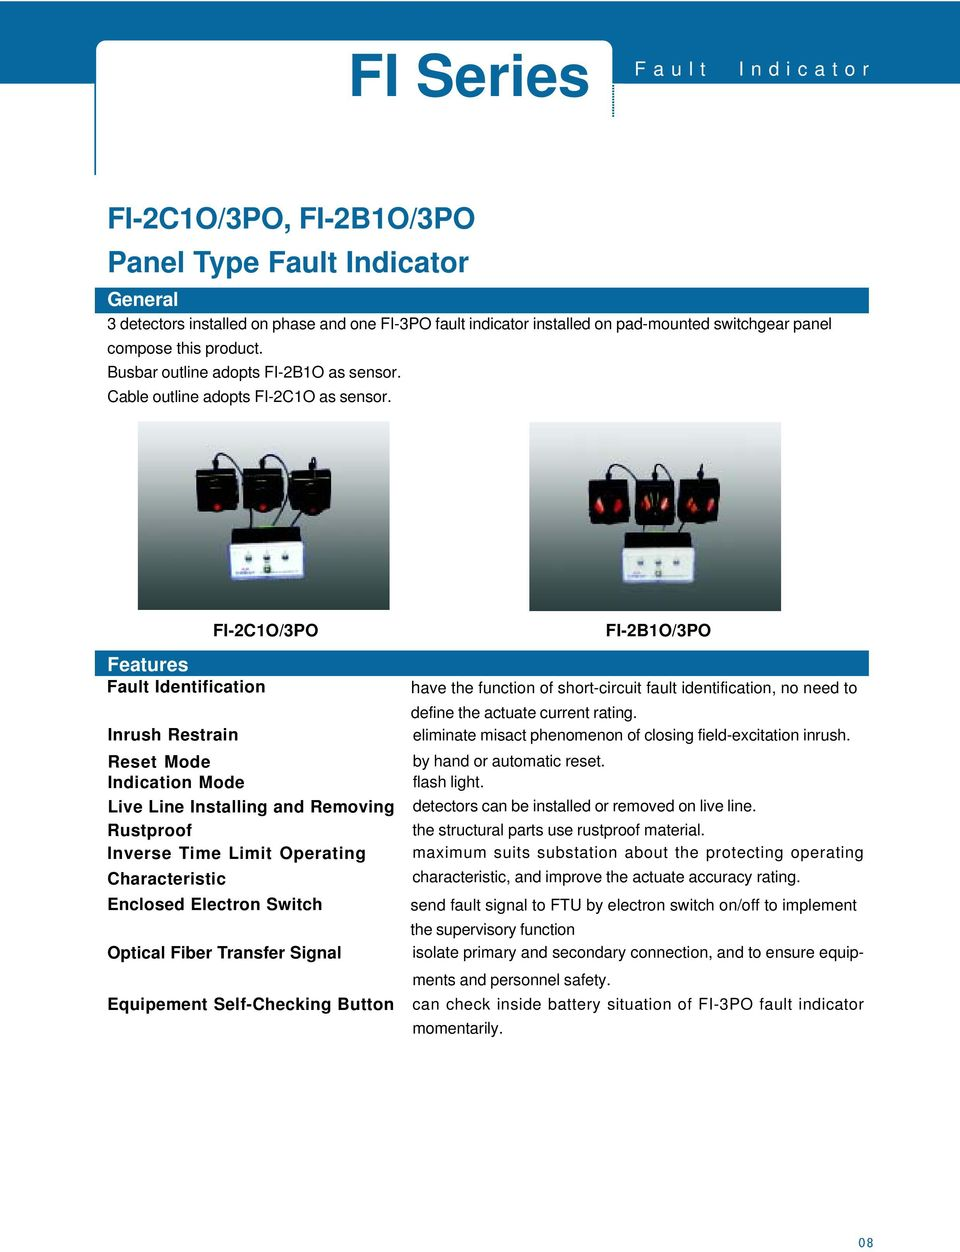 FI-2C1O/3PO Features Fault Identification Inrush Restrain Reset Mode Indication Mode Live Line Installing and Removing Rustproof Inverse Time Limit Operating Characteristic Enclosed Electron Switch